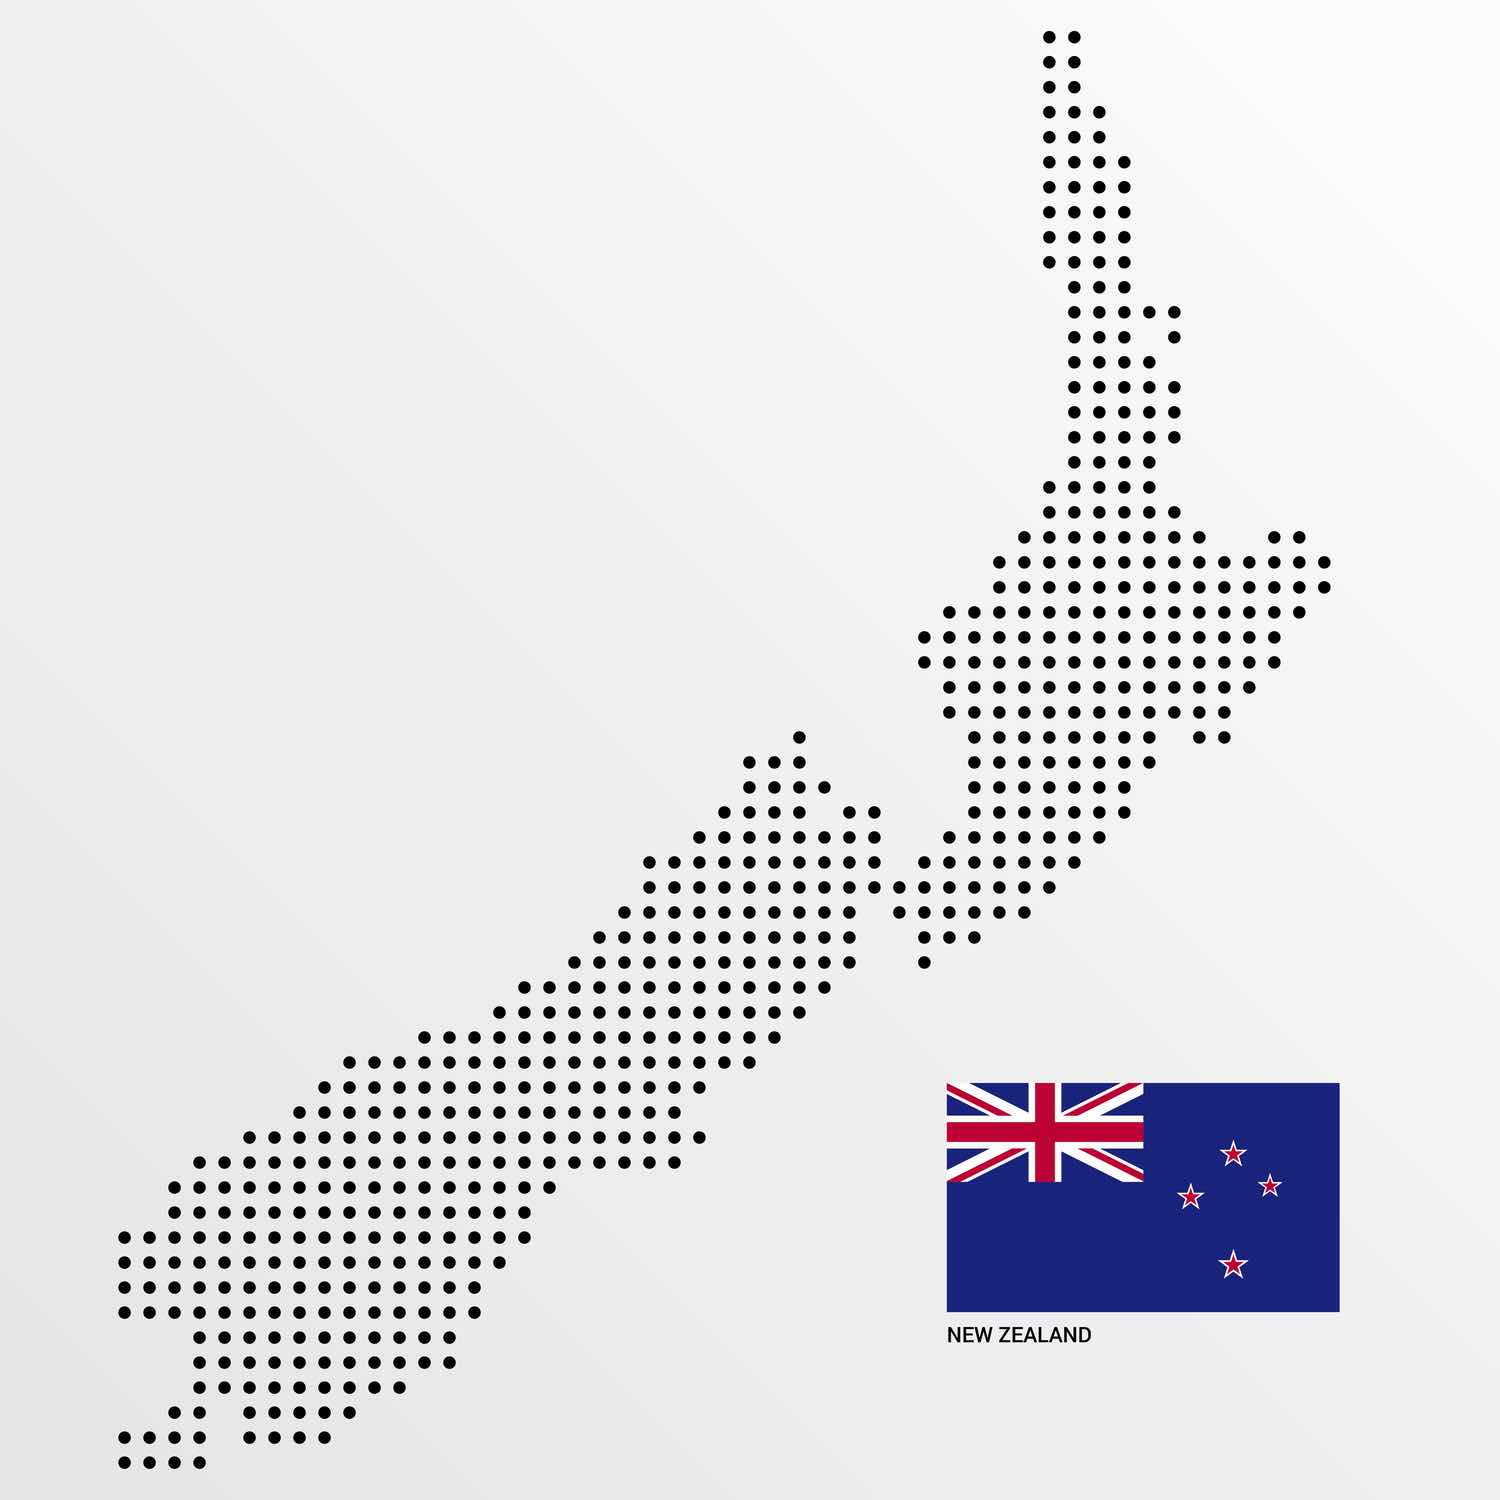 Best study abroad consultants near me for NewZealand